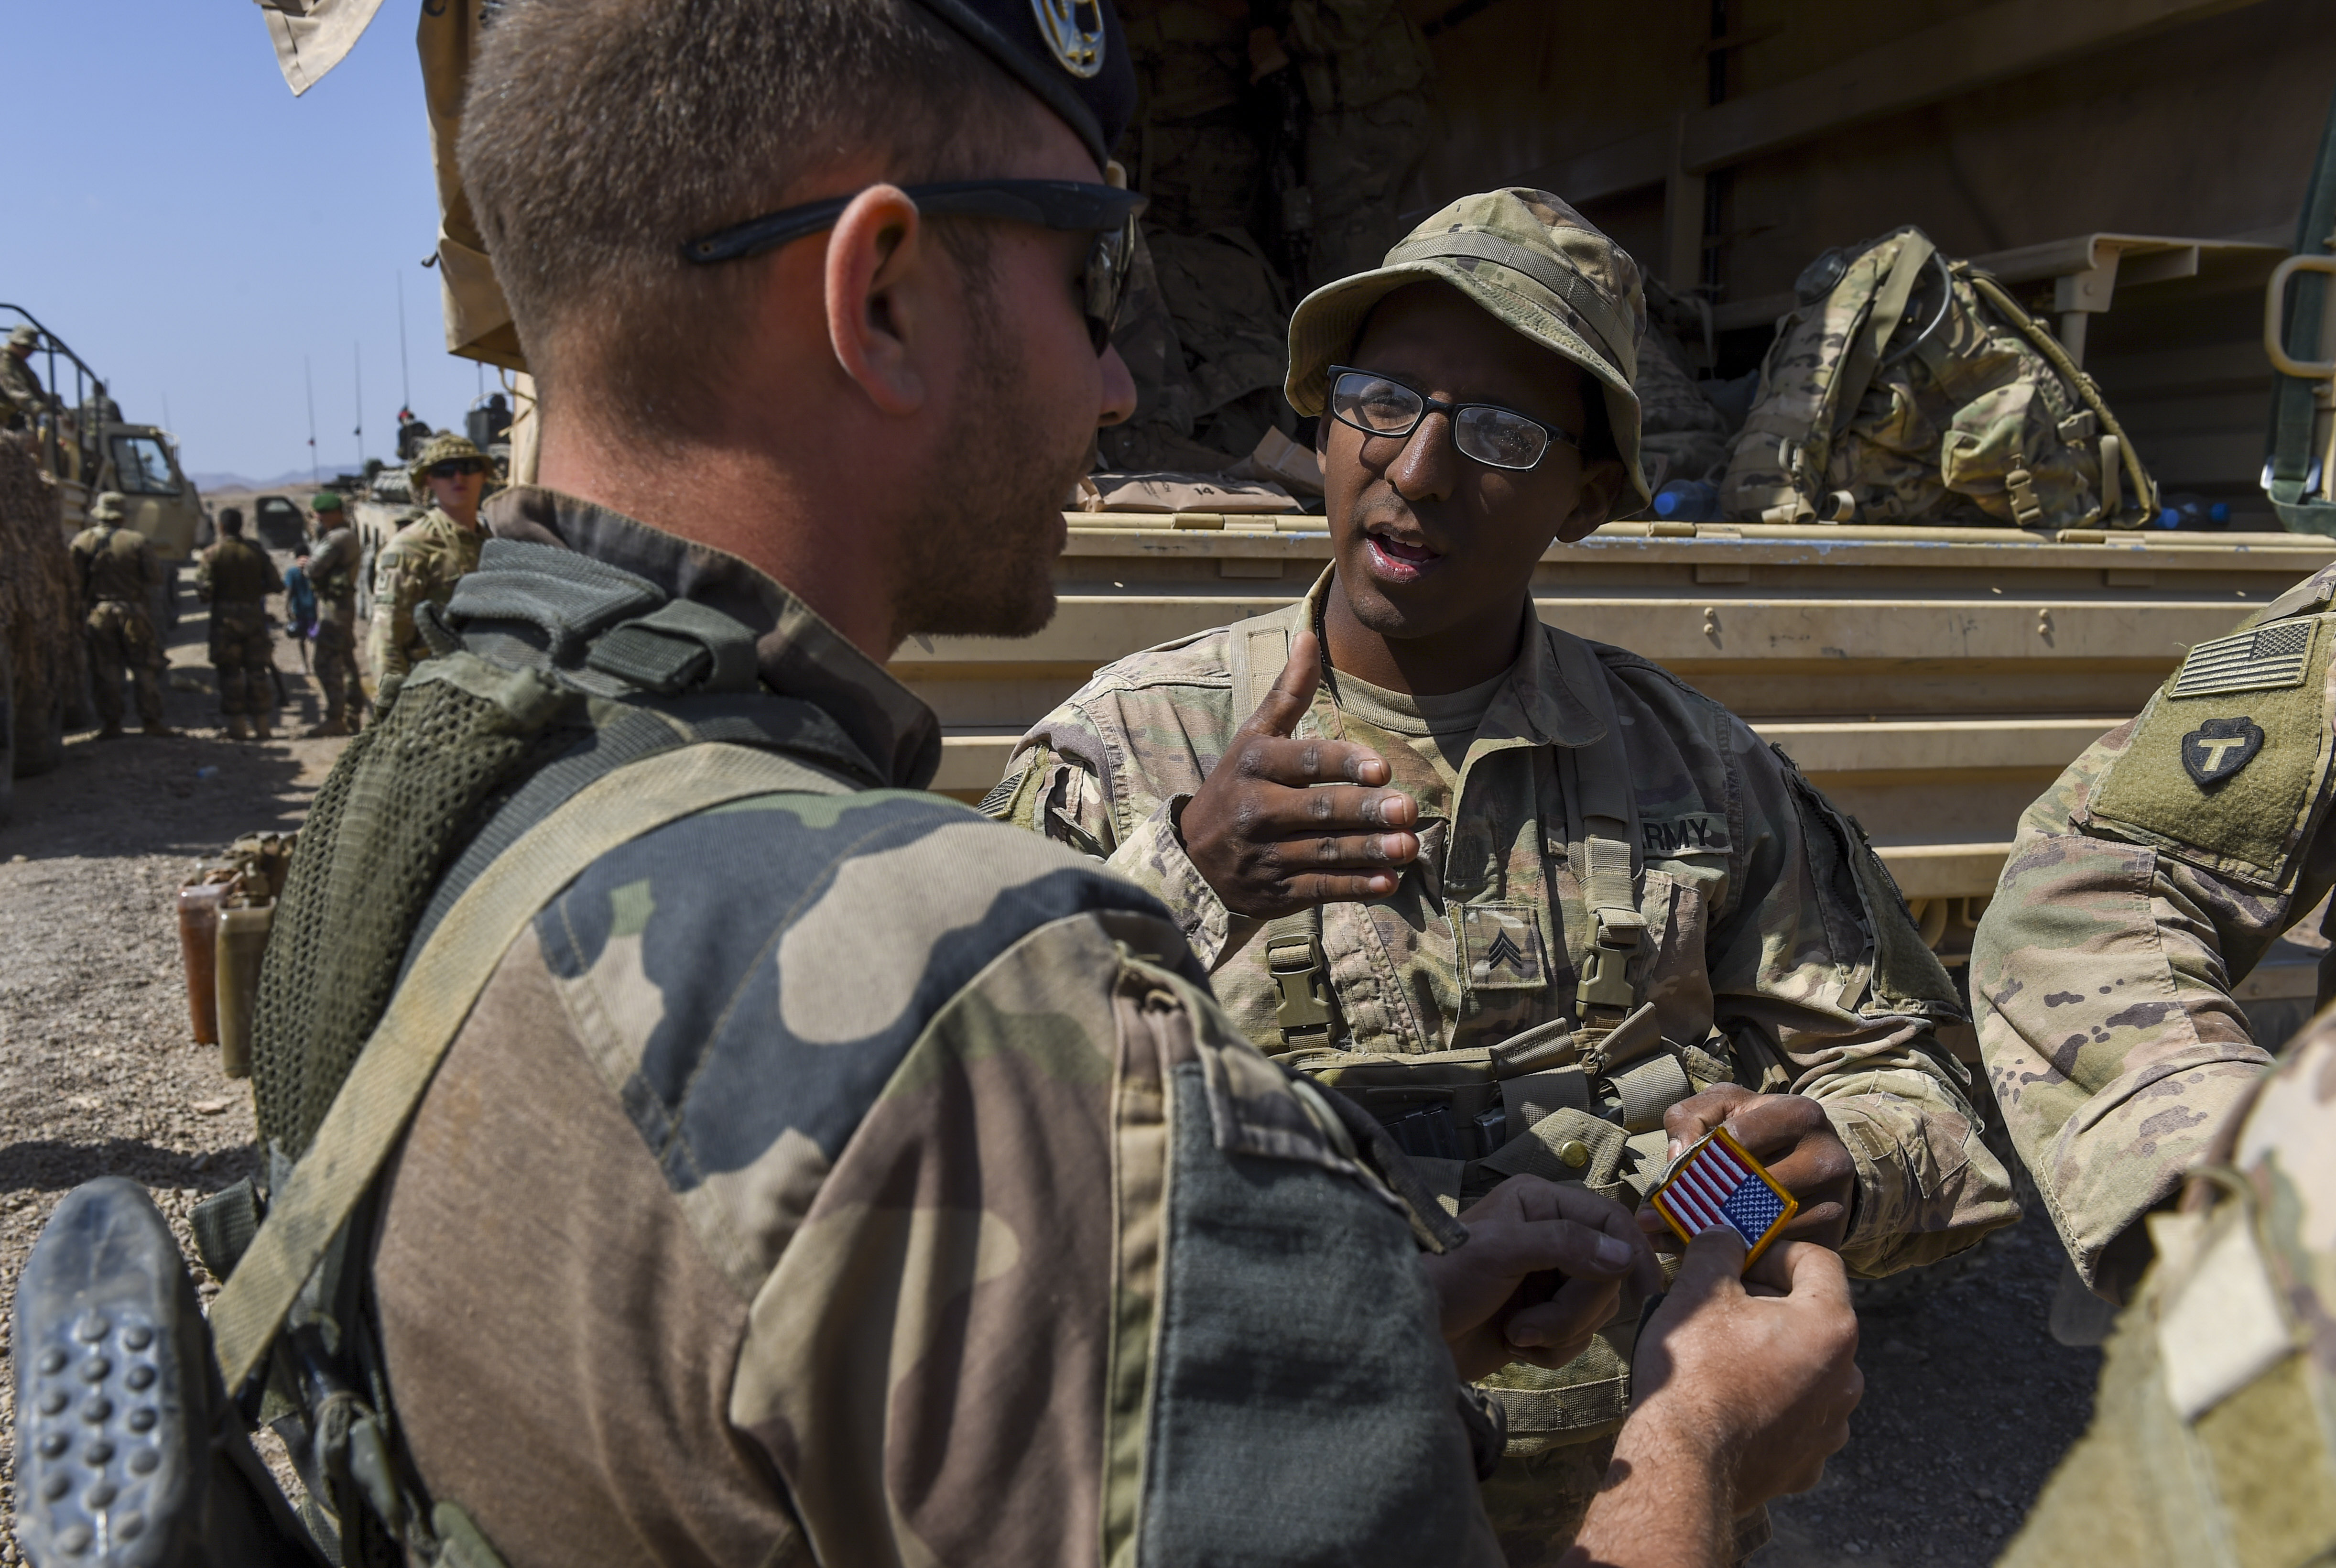 U.S. Army Sgt. Able Ballejo (right), assigned to 3rd Battalion, 144th Infantry Regiment, Texas Army National Guard, explains why the U.S. flag appears backwards on a traded patch to a French marine after the graduation ceremony of a French Desert Commando Course near Ali Sabieh, Djibouti, Dec. 7, 2017. U.S. service members assigned to Combined Joint Task Force - Horn of Africa participated in the 12-day course, in which they learned the fundamentals of desert combat, survival, and troop movements while also bridging language and cultural barriers between French and American troops. (U.S. Air Force photo by Staff Sgt. Timothy Moore)